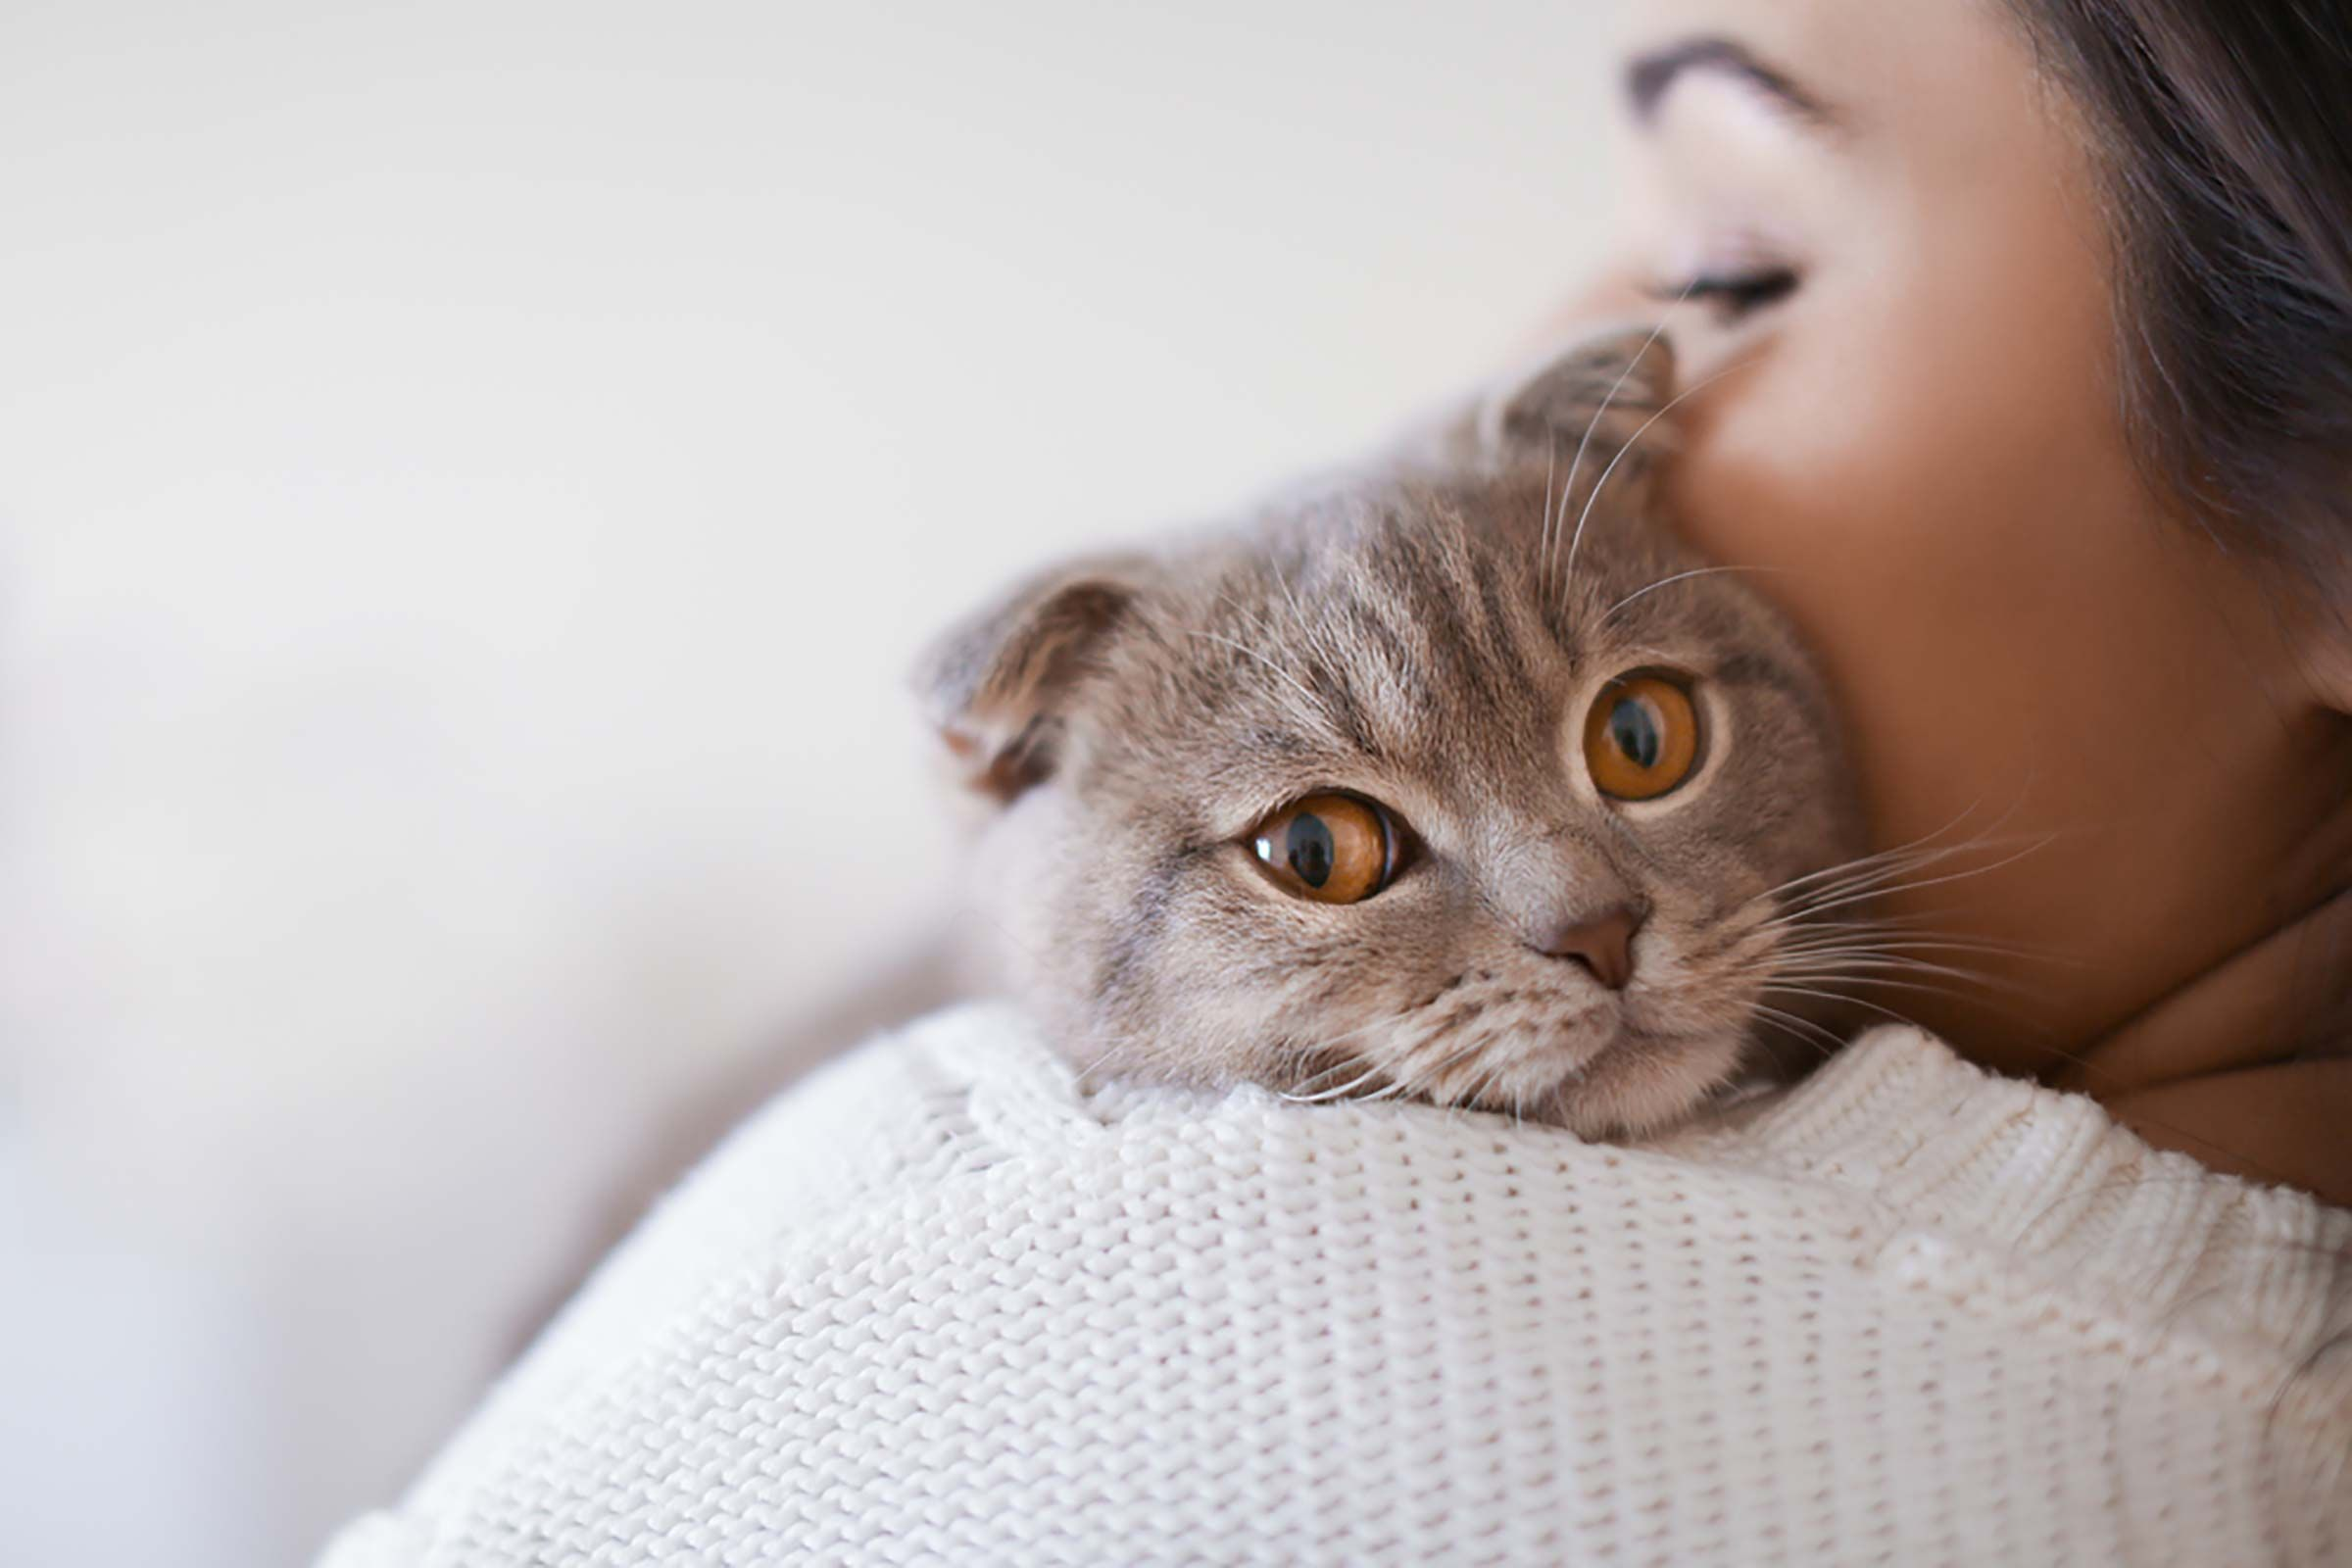 83b9177cfb414560474bb1f7d2b7e0e4 - How Do You Get Your Cat To Like You